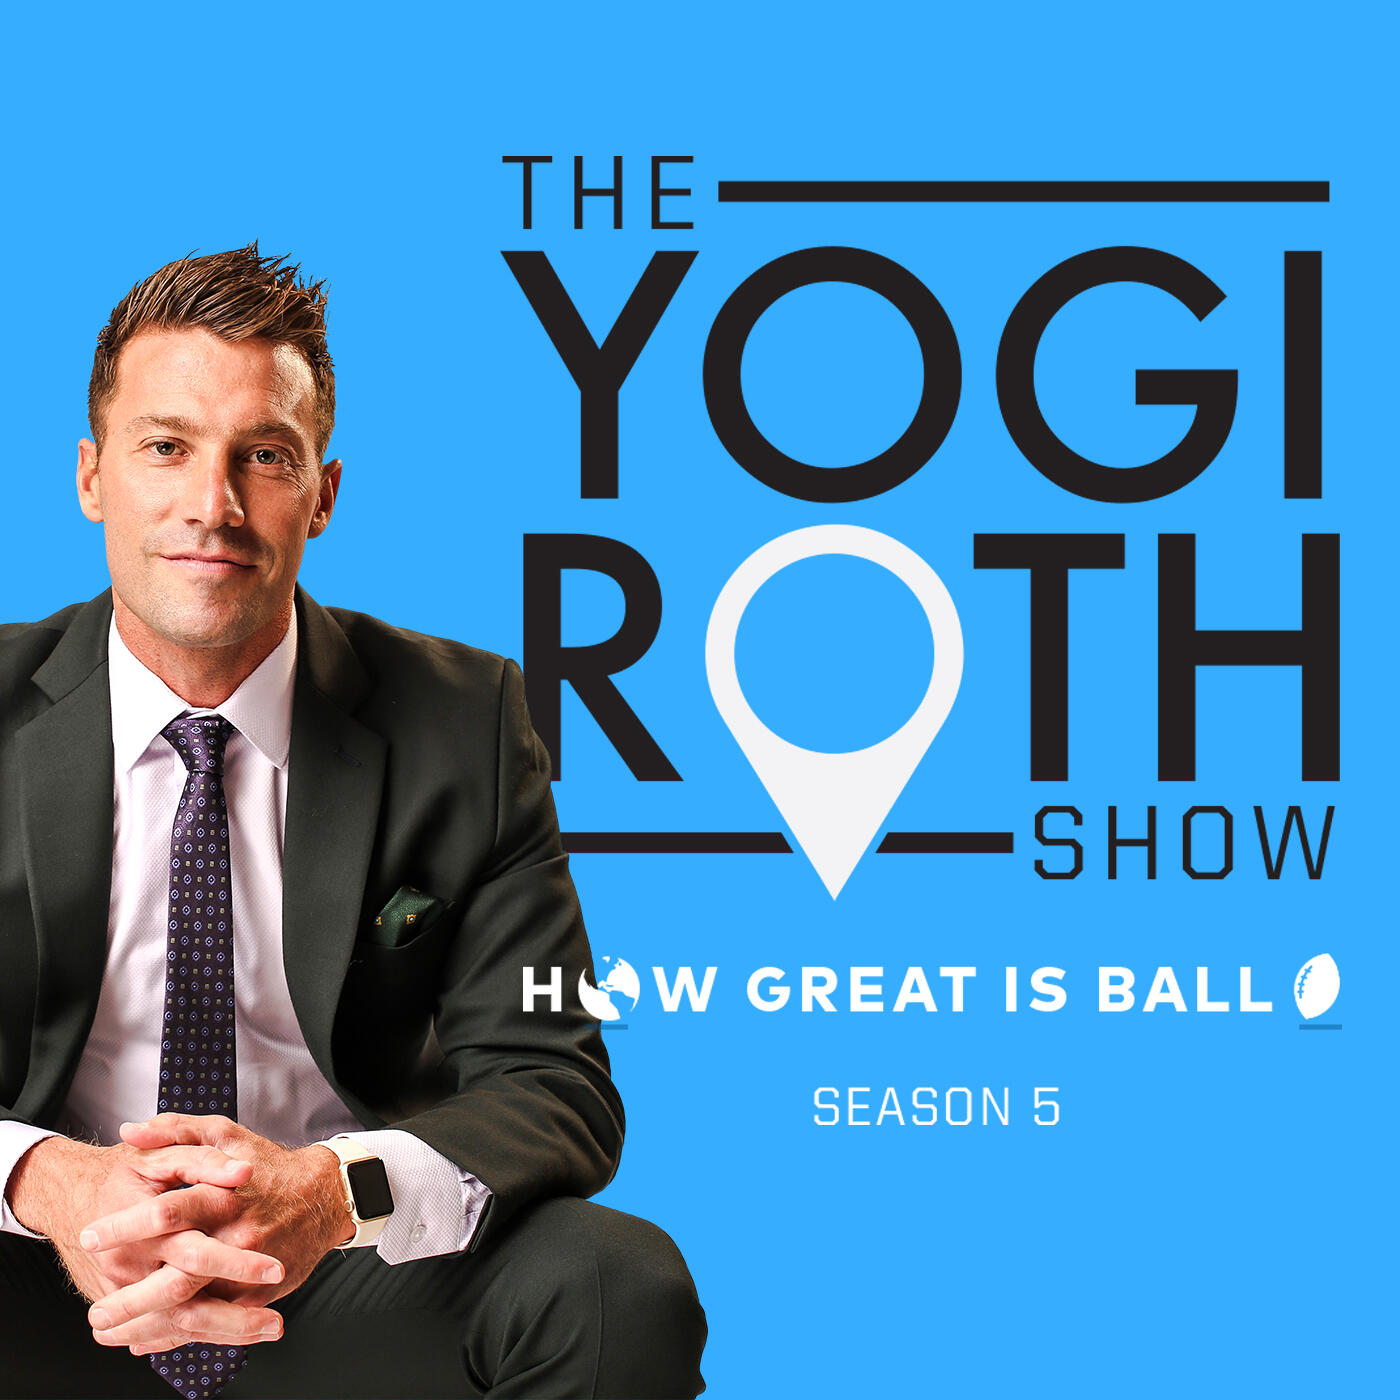 The Yogi Roth Show: How Great Is Ball